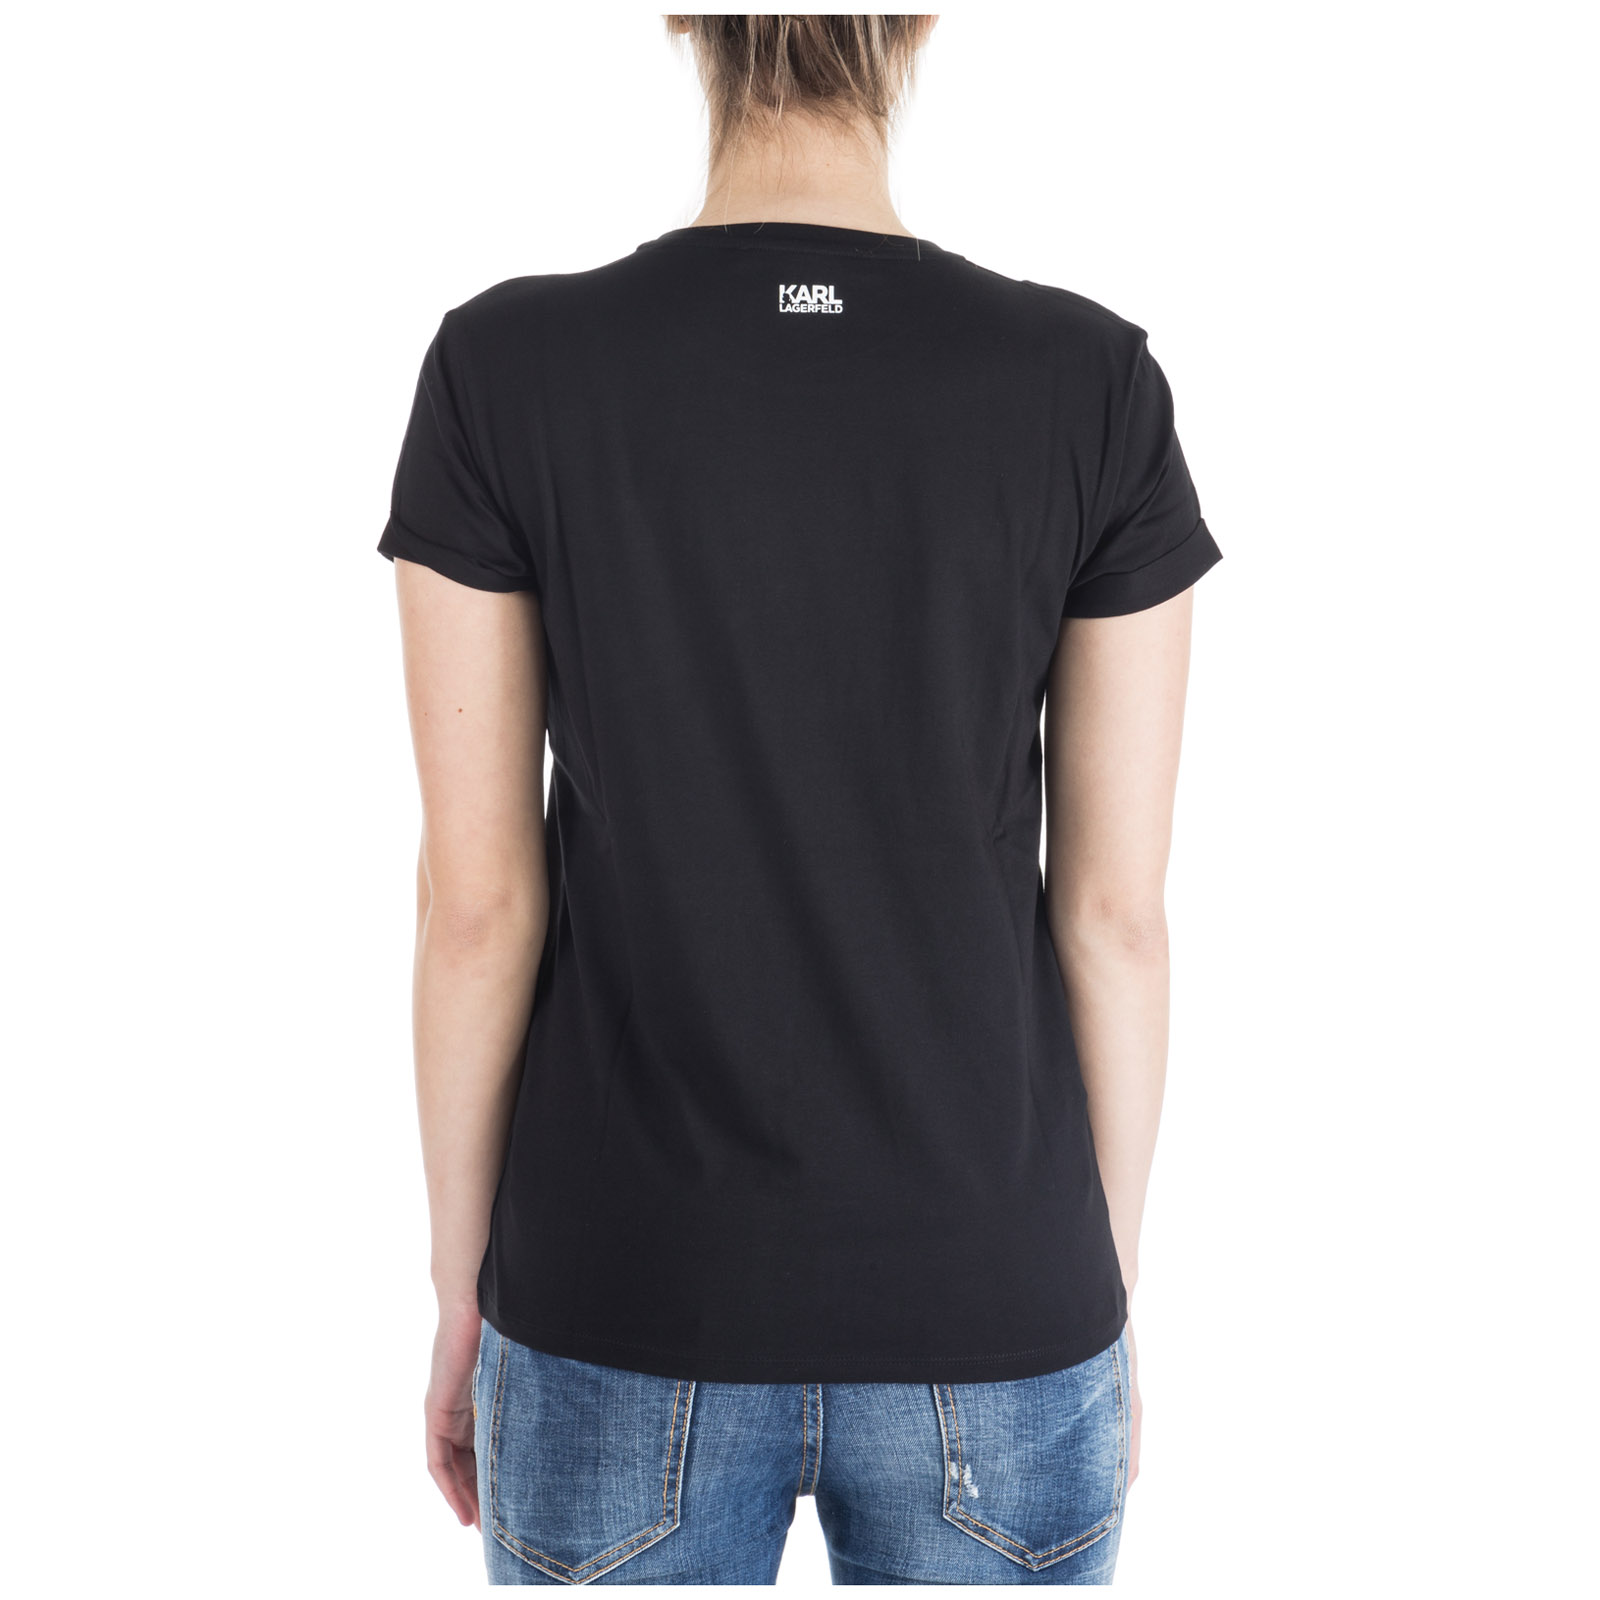 Women's t-shirt short sleeve crew neck round ikonik